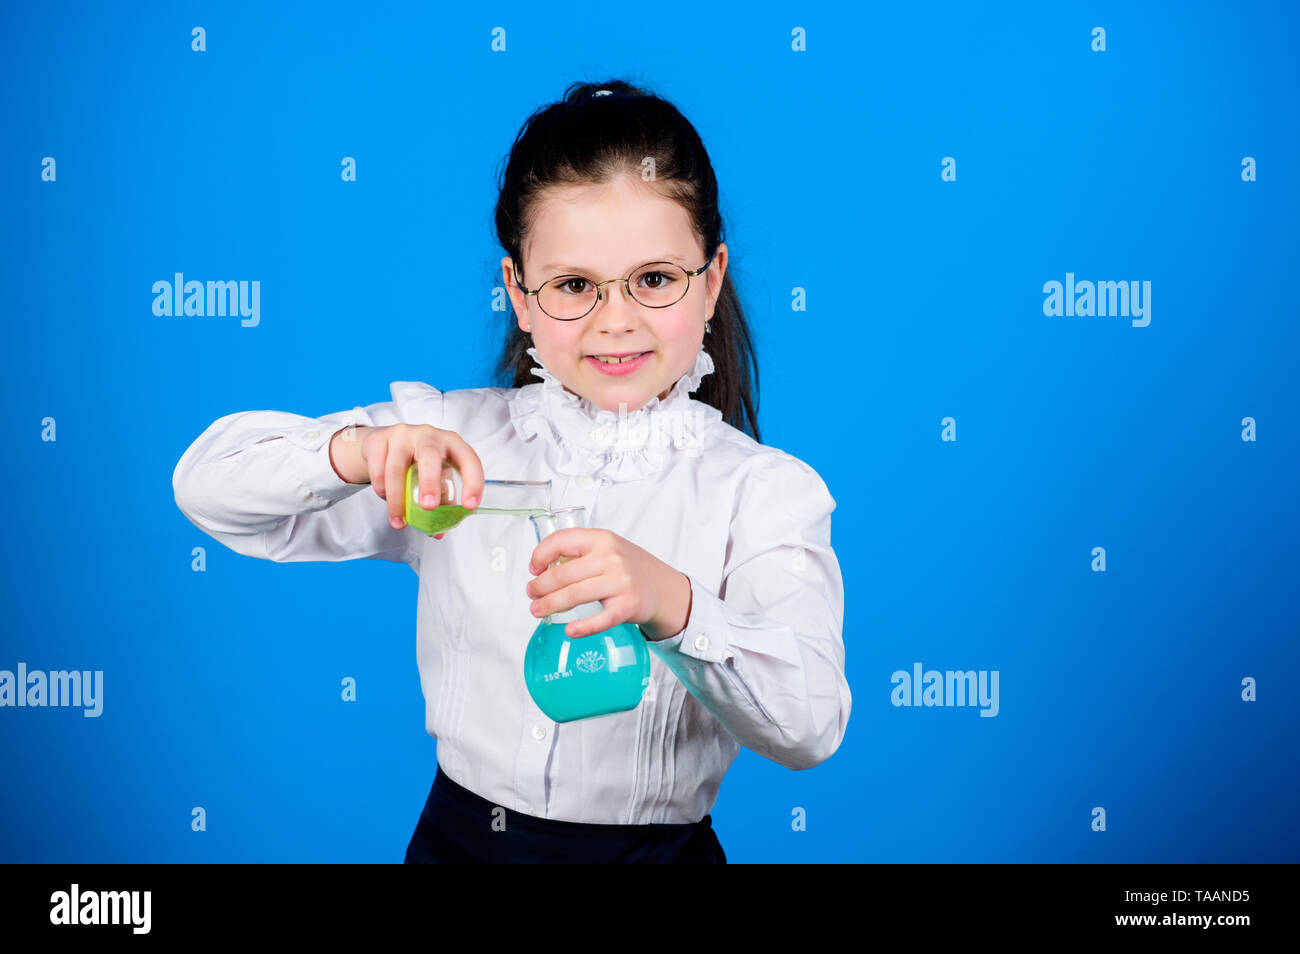 Experimenting a bit. Small kid study. Education concept. Basic knowledge. Knowledge day. Serious about studying. Schoolgirl with chemical liquids. Chi - Stock Image